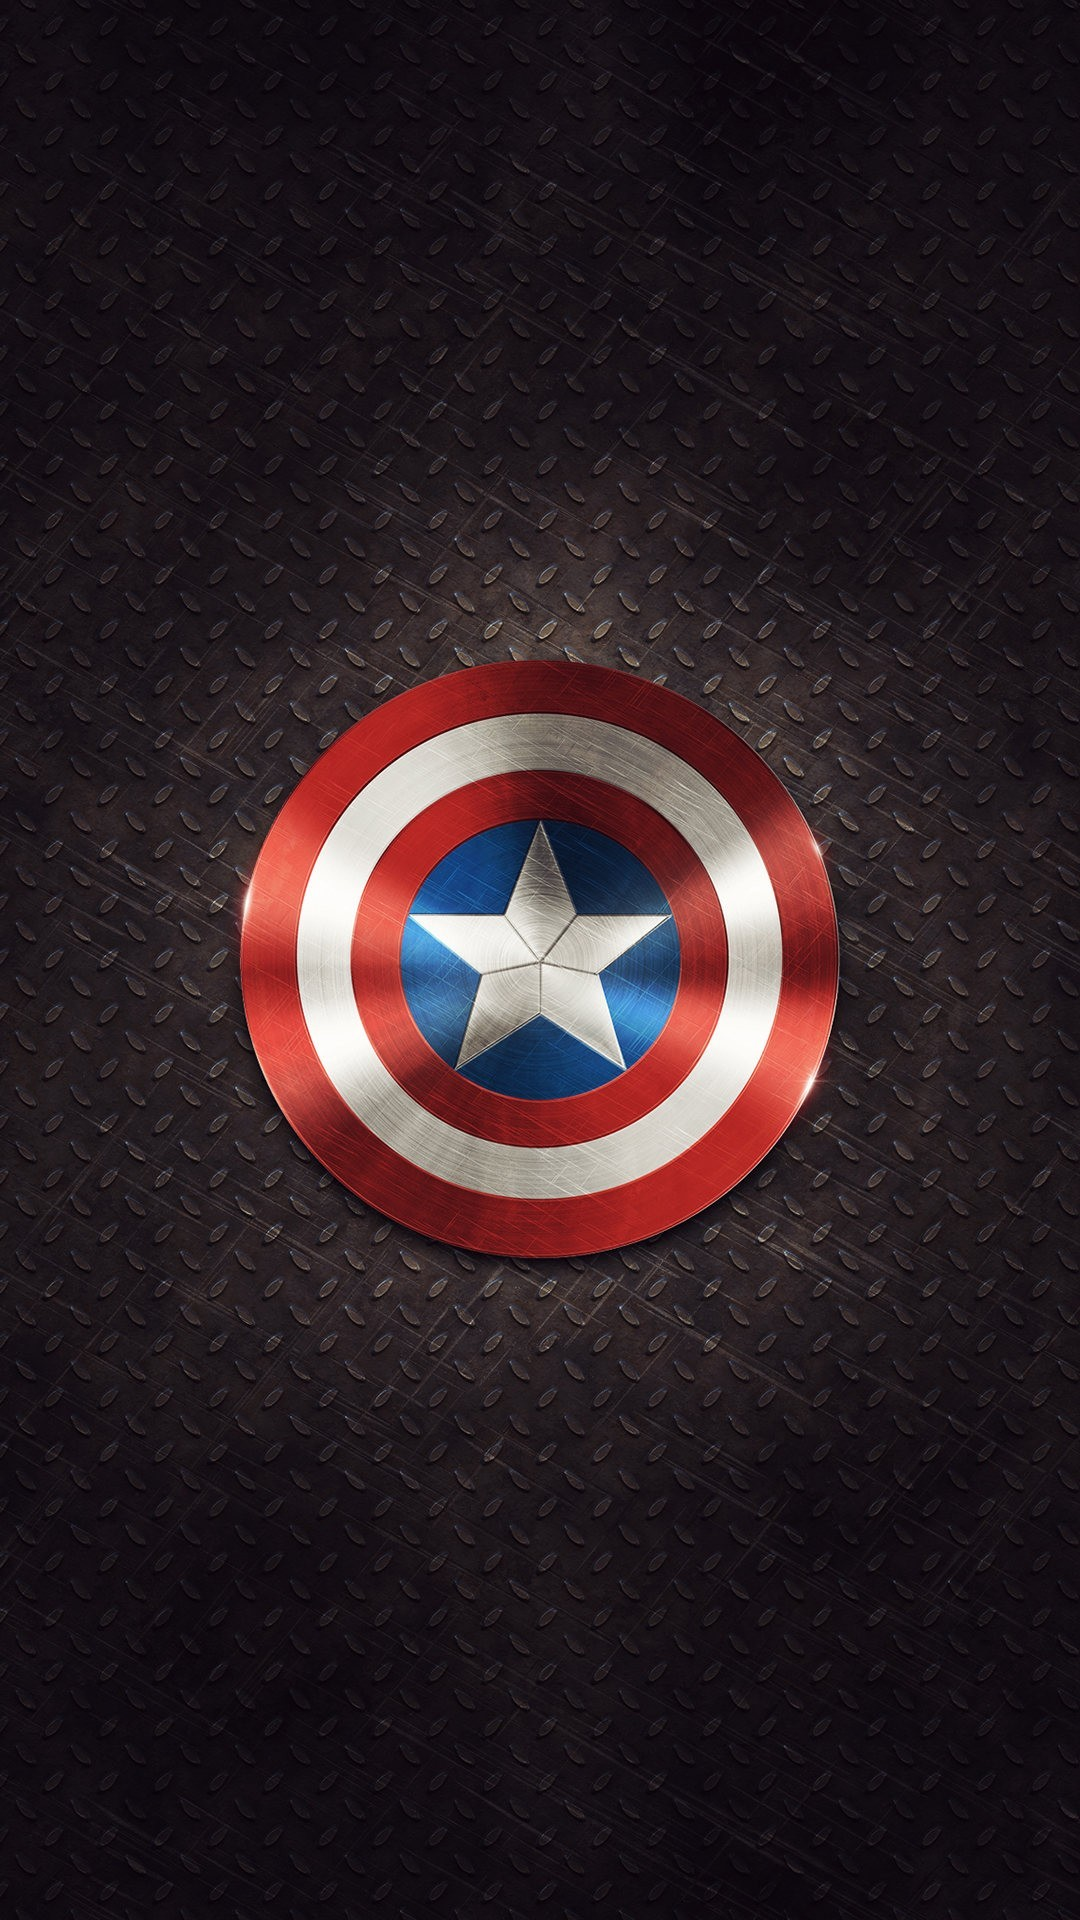 Captain America Civil War Hd Wallpapers For Xiaomi Redmi Note 3